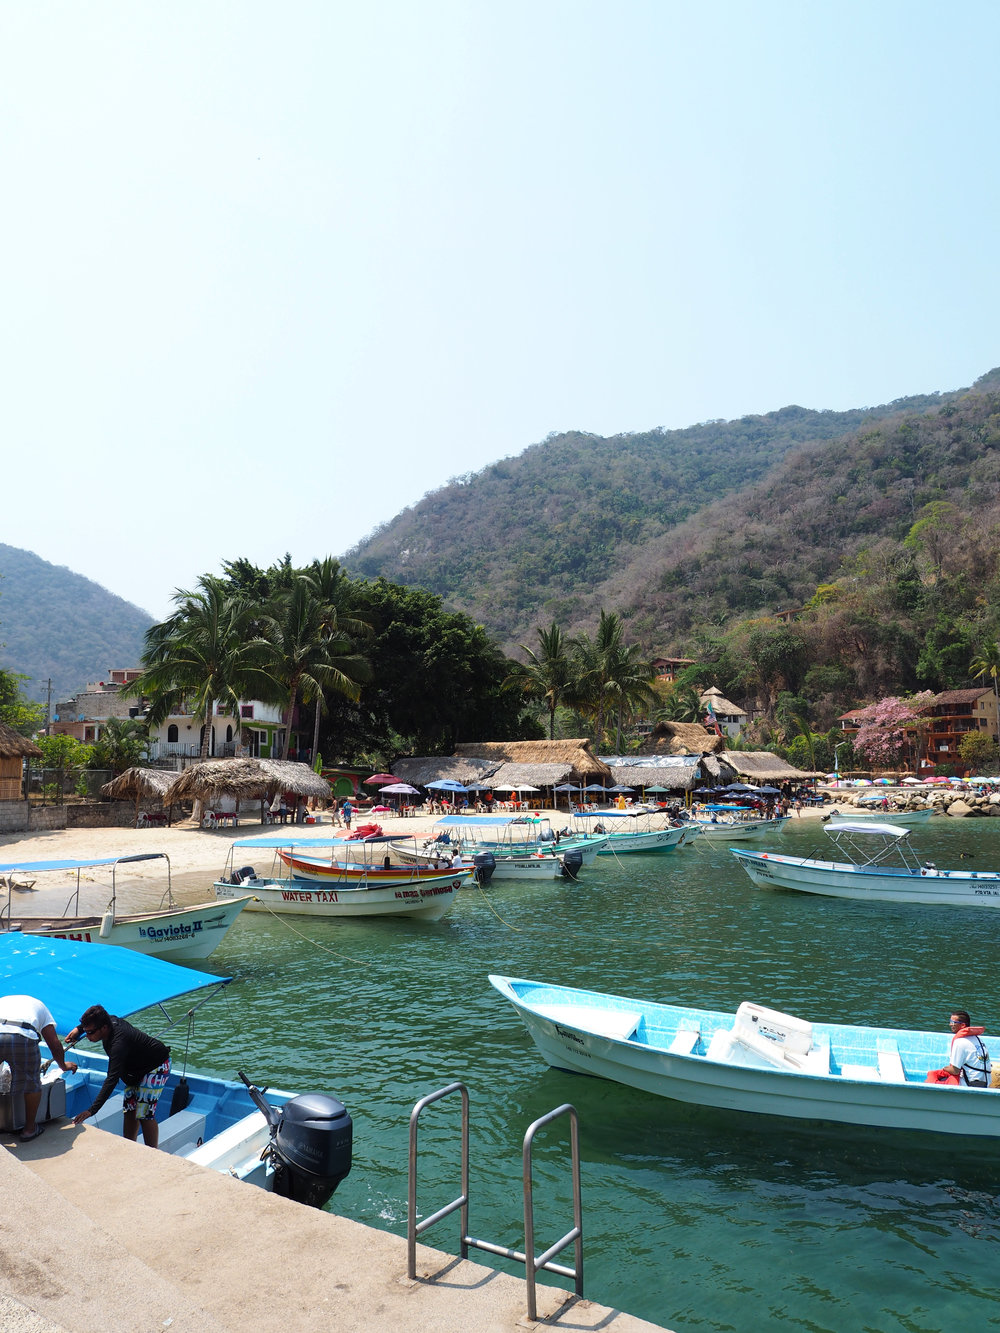 Boats waiting to transfer guests to their hotels